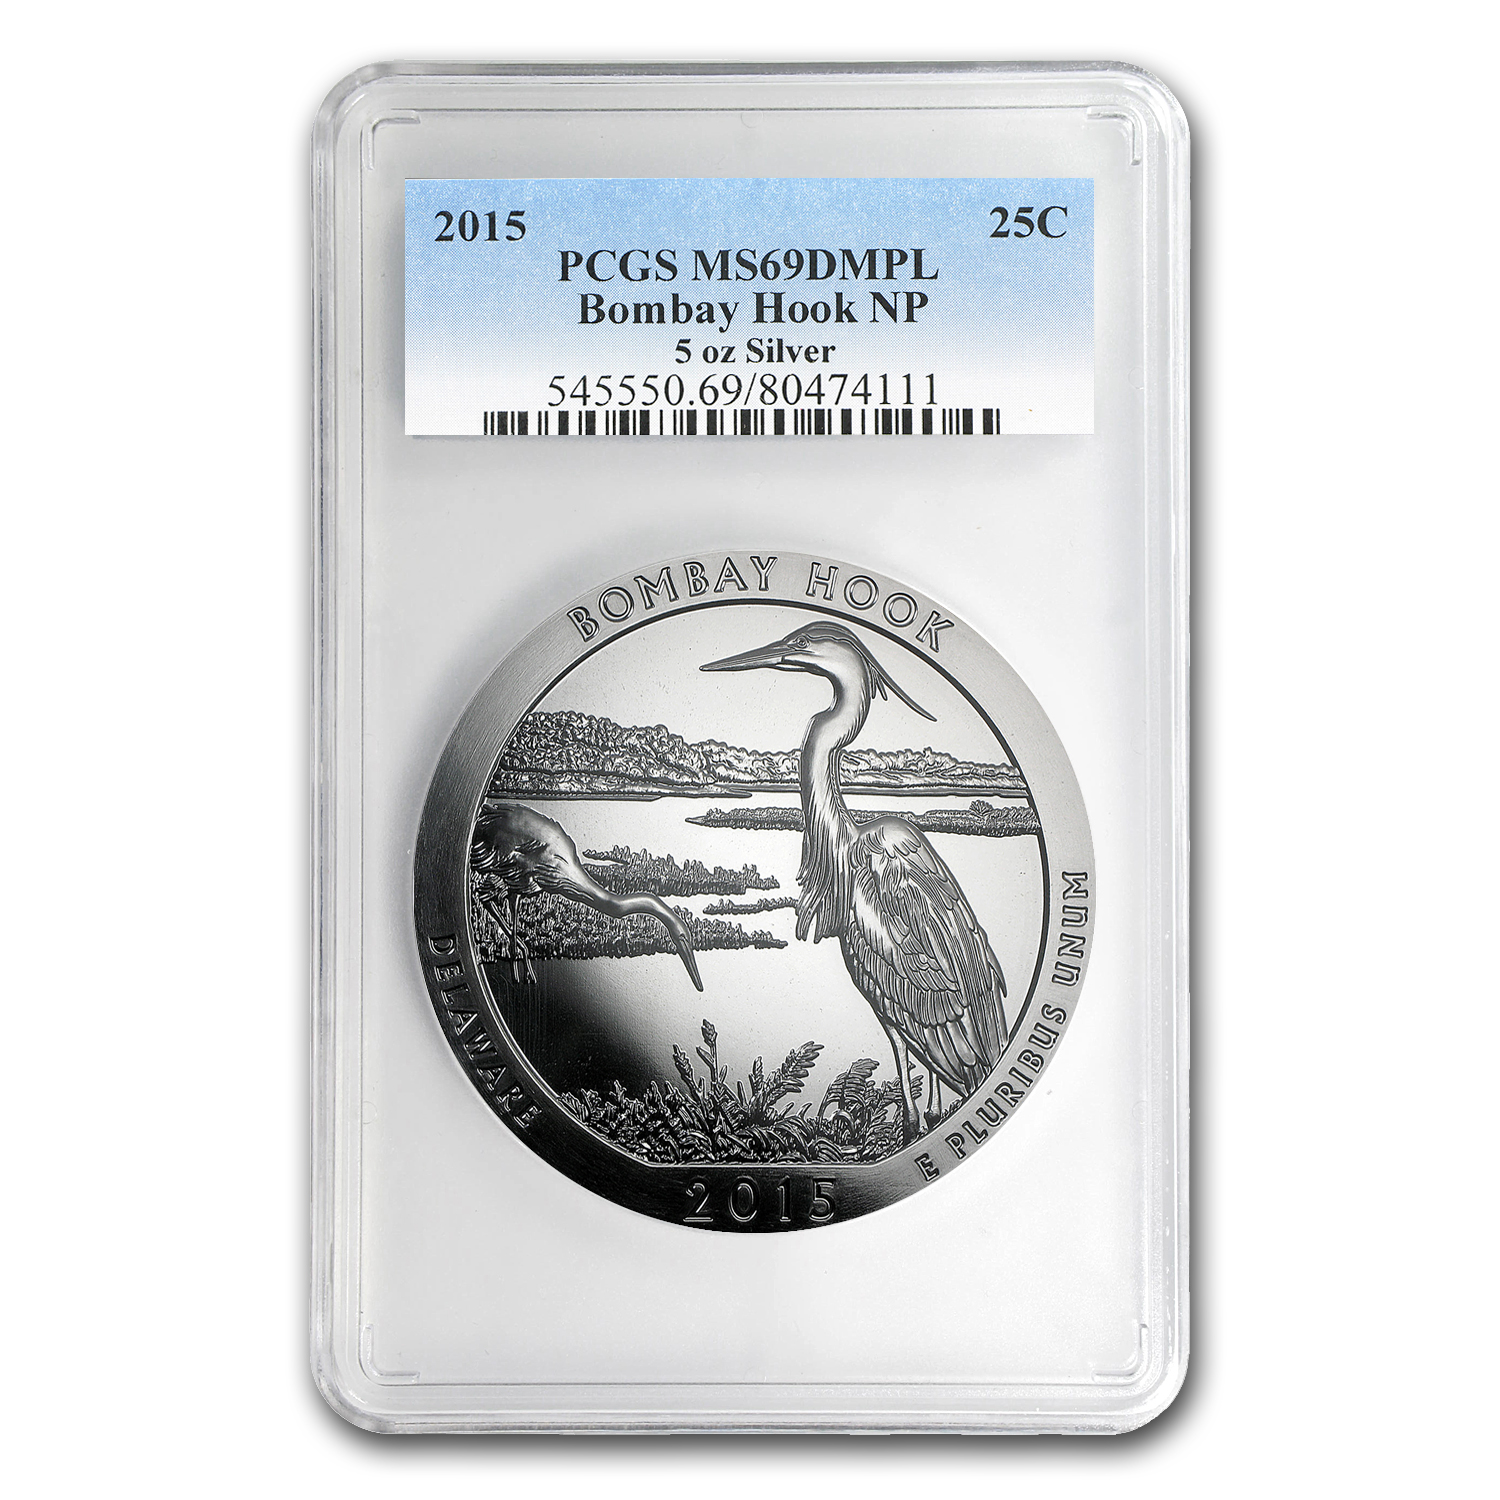 2015 5 oz Silver ATB Bombay Hook MS-69 DMPL PCGS